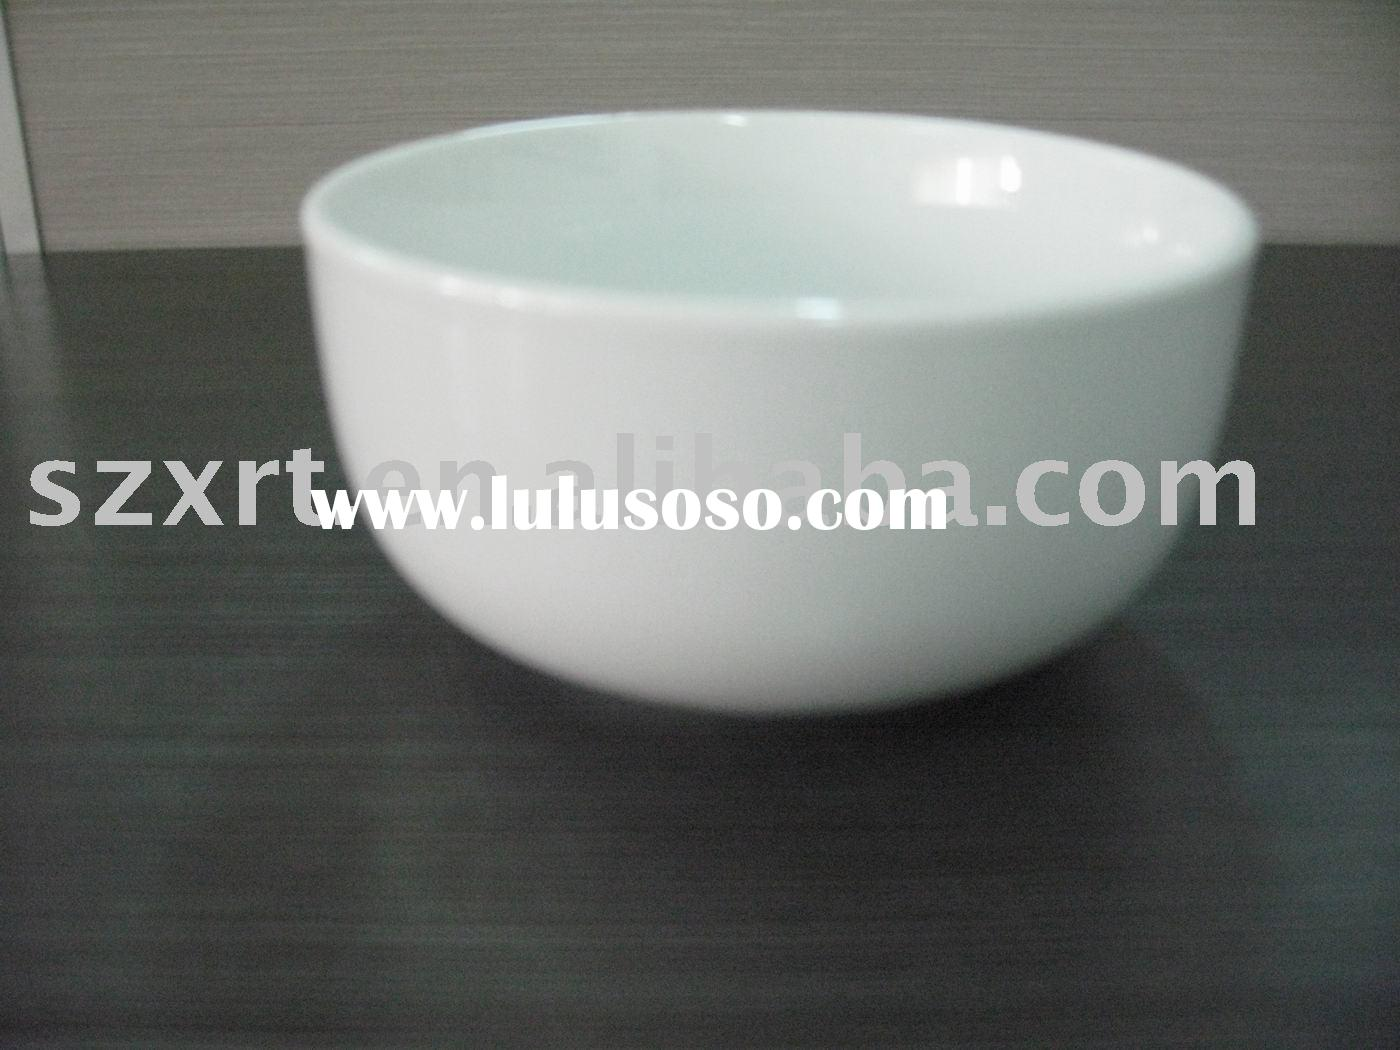 Daily-use simple white porcelain rice bowl